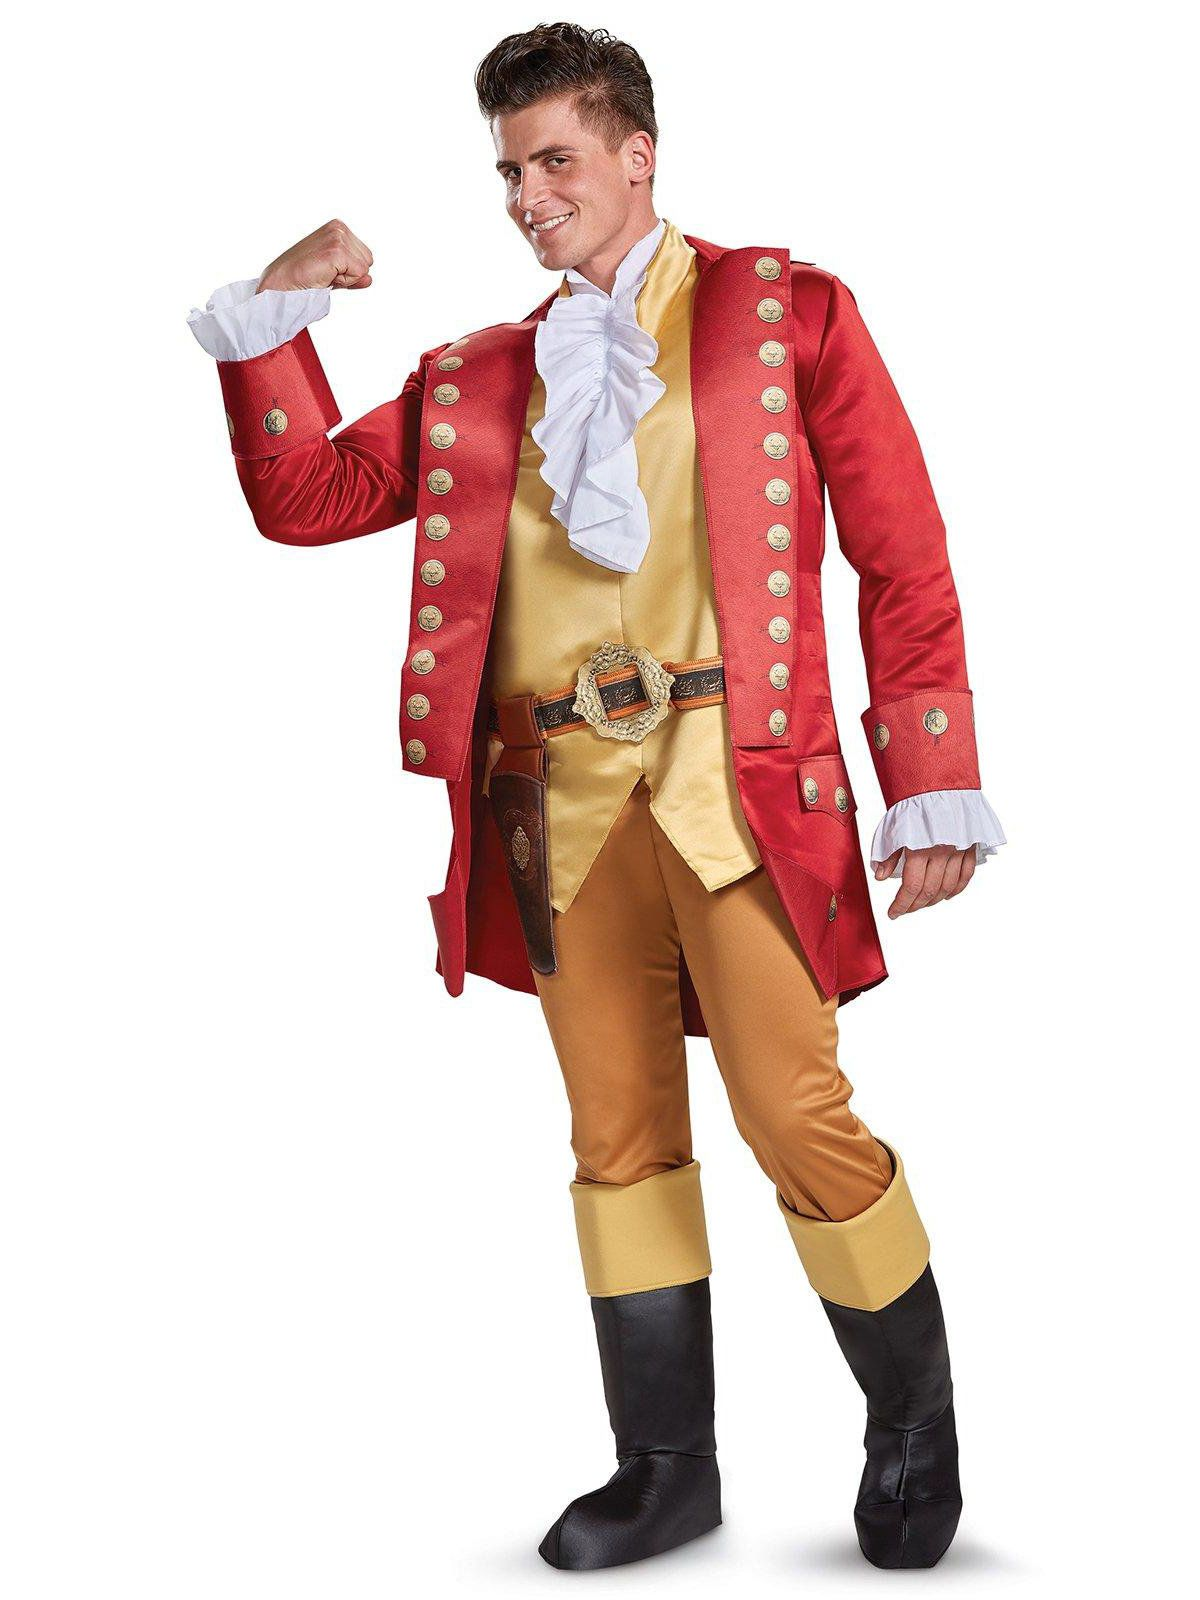 Adult Disneyu0027s Beauty and the Beast Live Action Gaston Costume Deluxe For Adults  sc 1 st  Wholesale Halloween Costumes & Adult Disneyu0027s Beauty and the Beast Live Action Gaston Costume ...